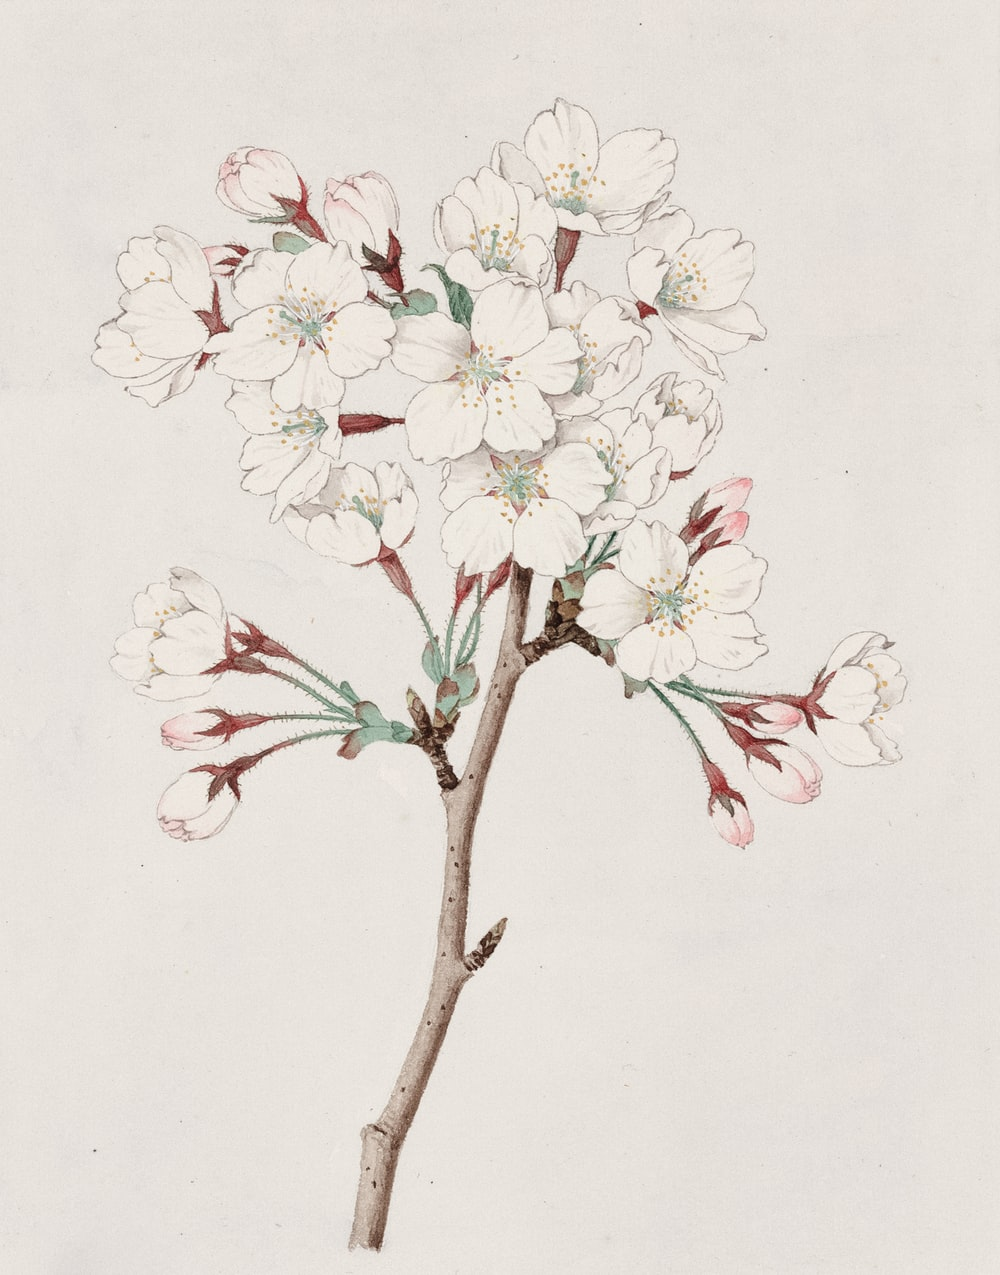 Watercolor of cherry blossoms.